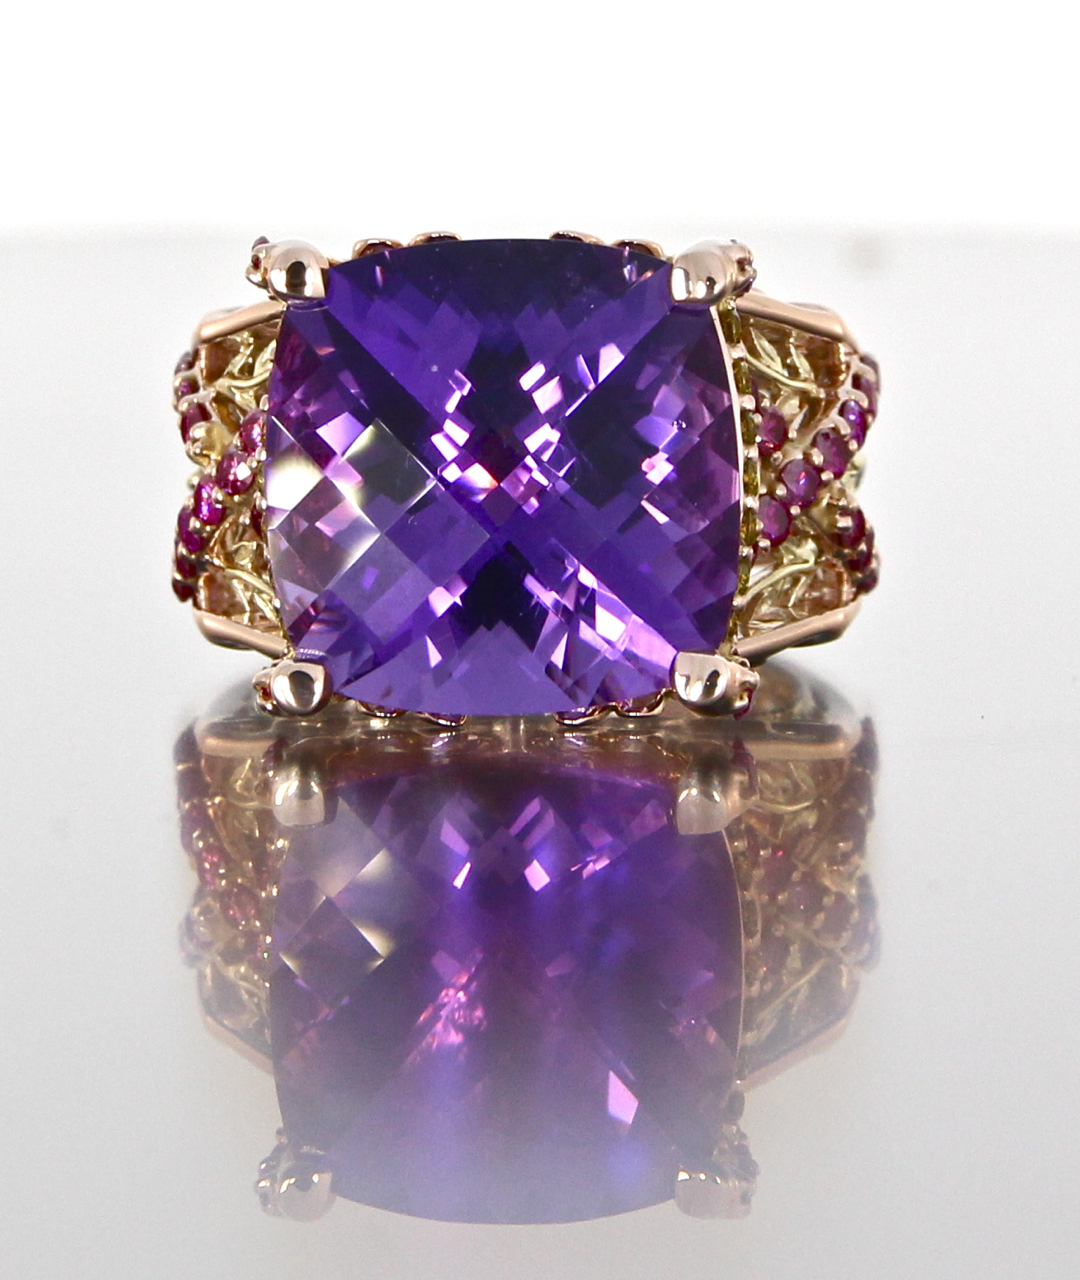 unique-amethyst-engagement-ring-modern-design-pink-diamonds-yellow-diamonds-craft-revival-jewelry-store-grand-rapids